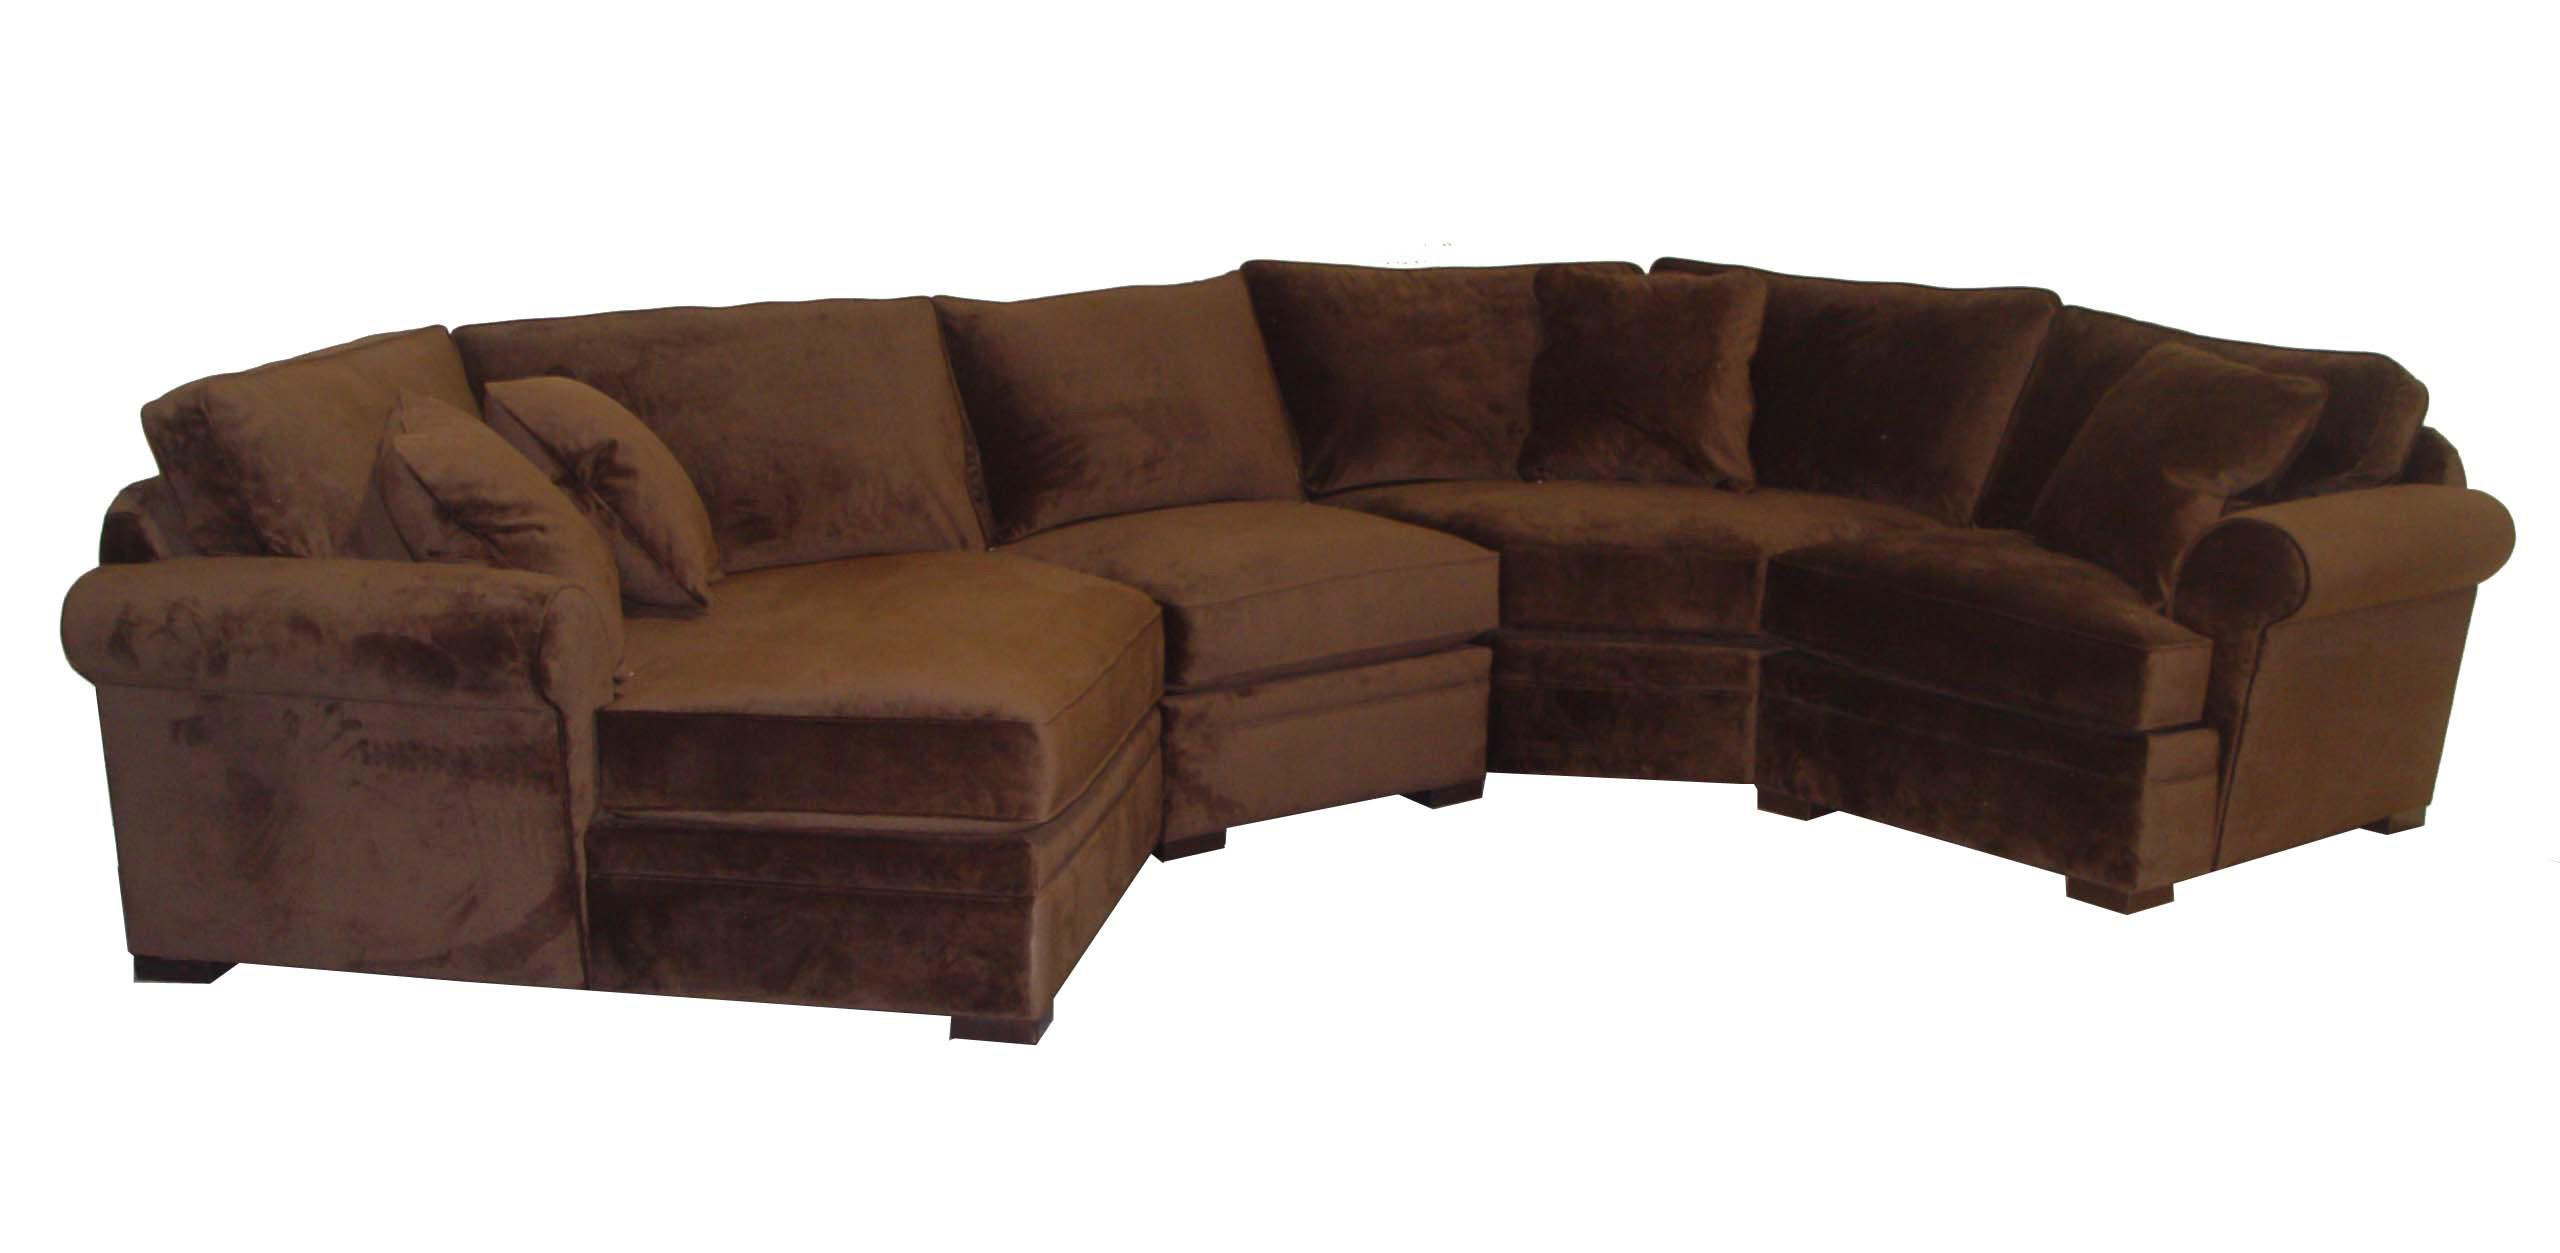 Jonathan Louis Hermes Four Piece Sectional Sofa With LAF